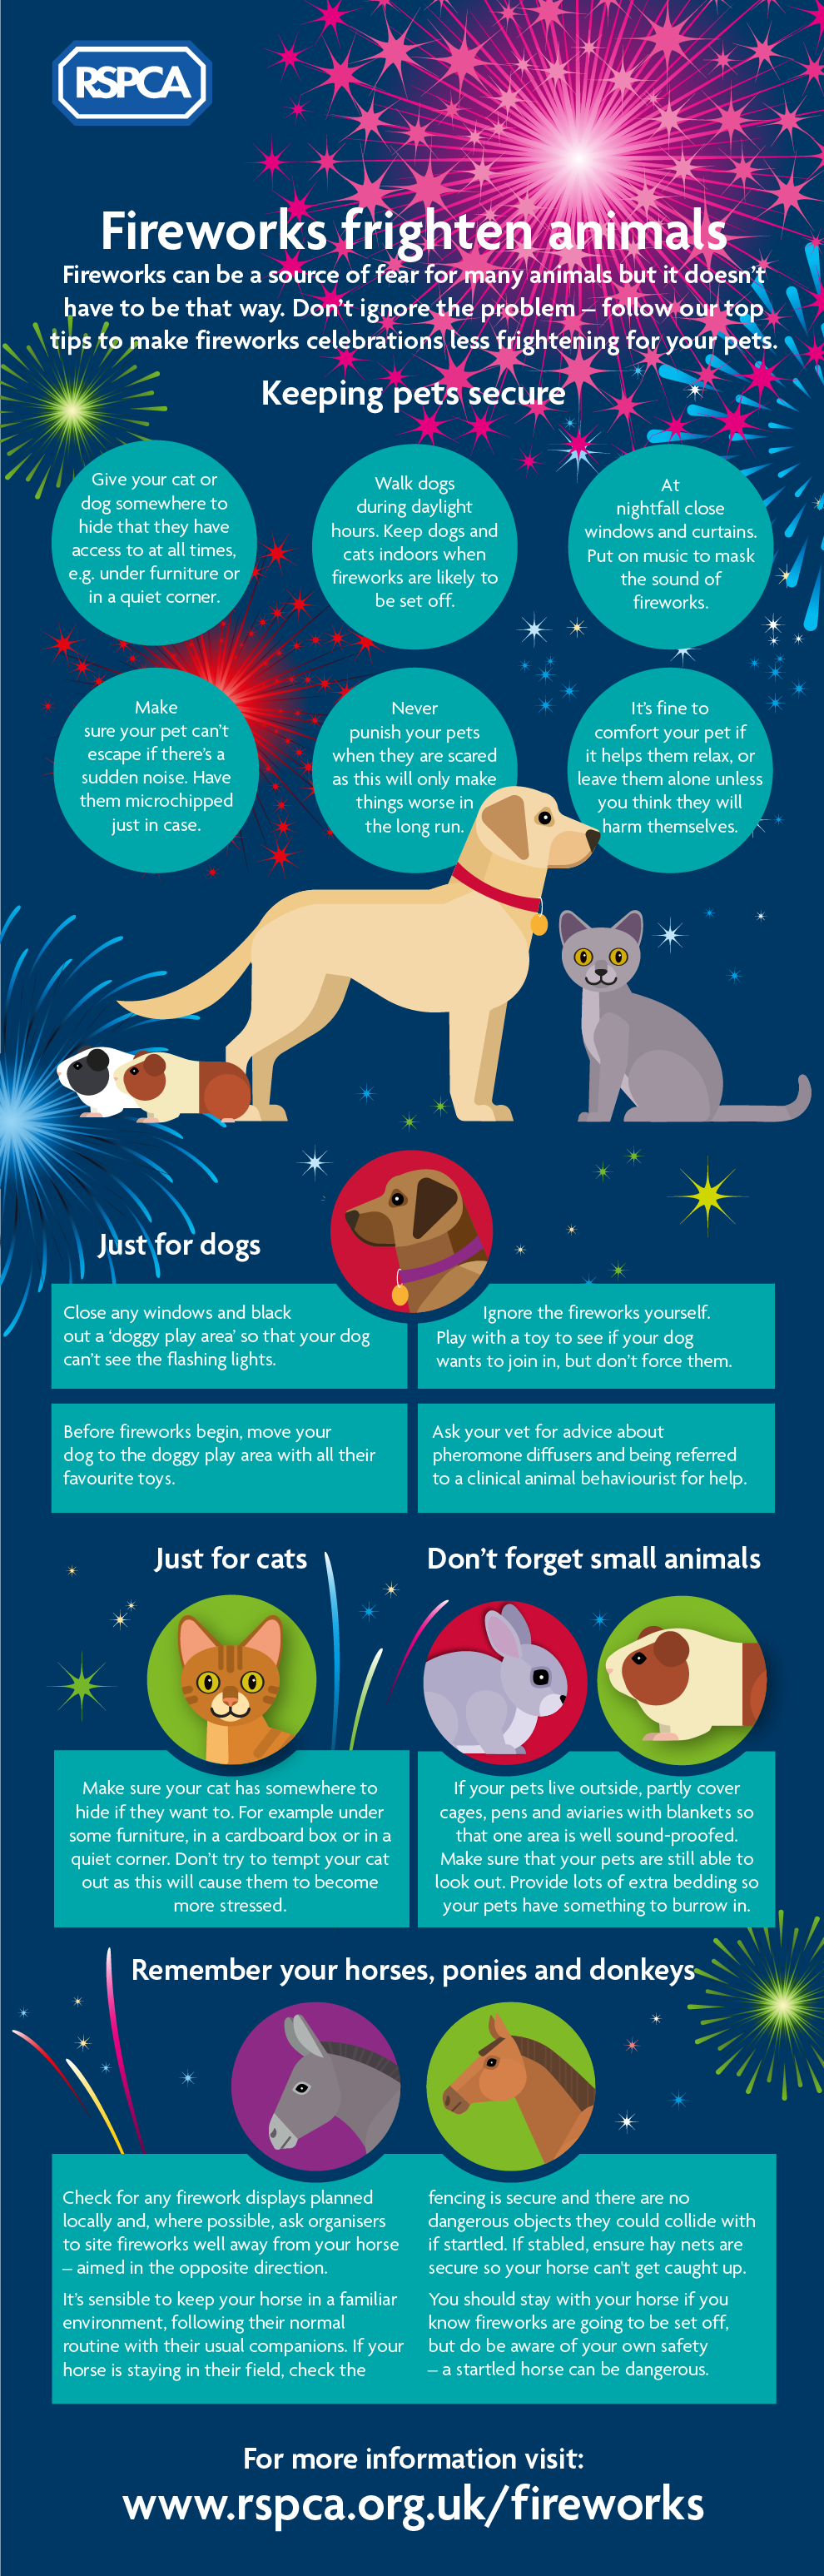 Advice for pet owners during the fireworks season Infographic ¿ RSPCA